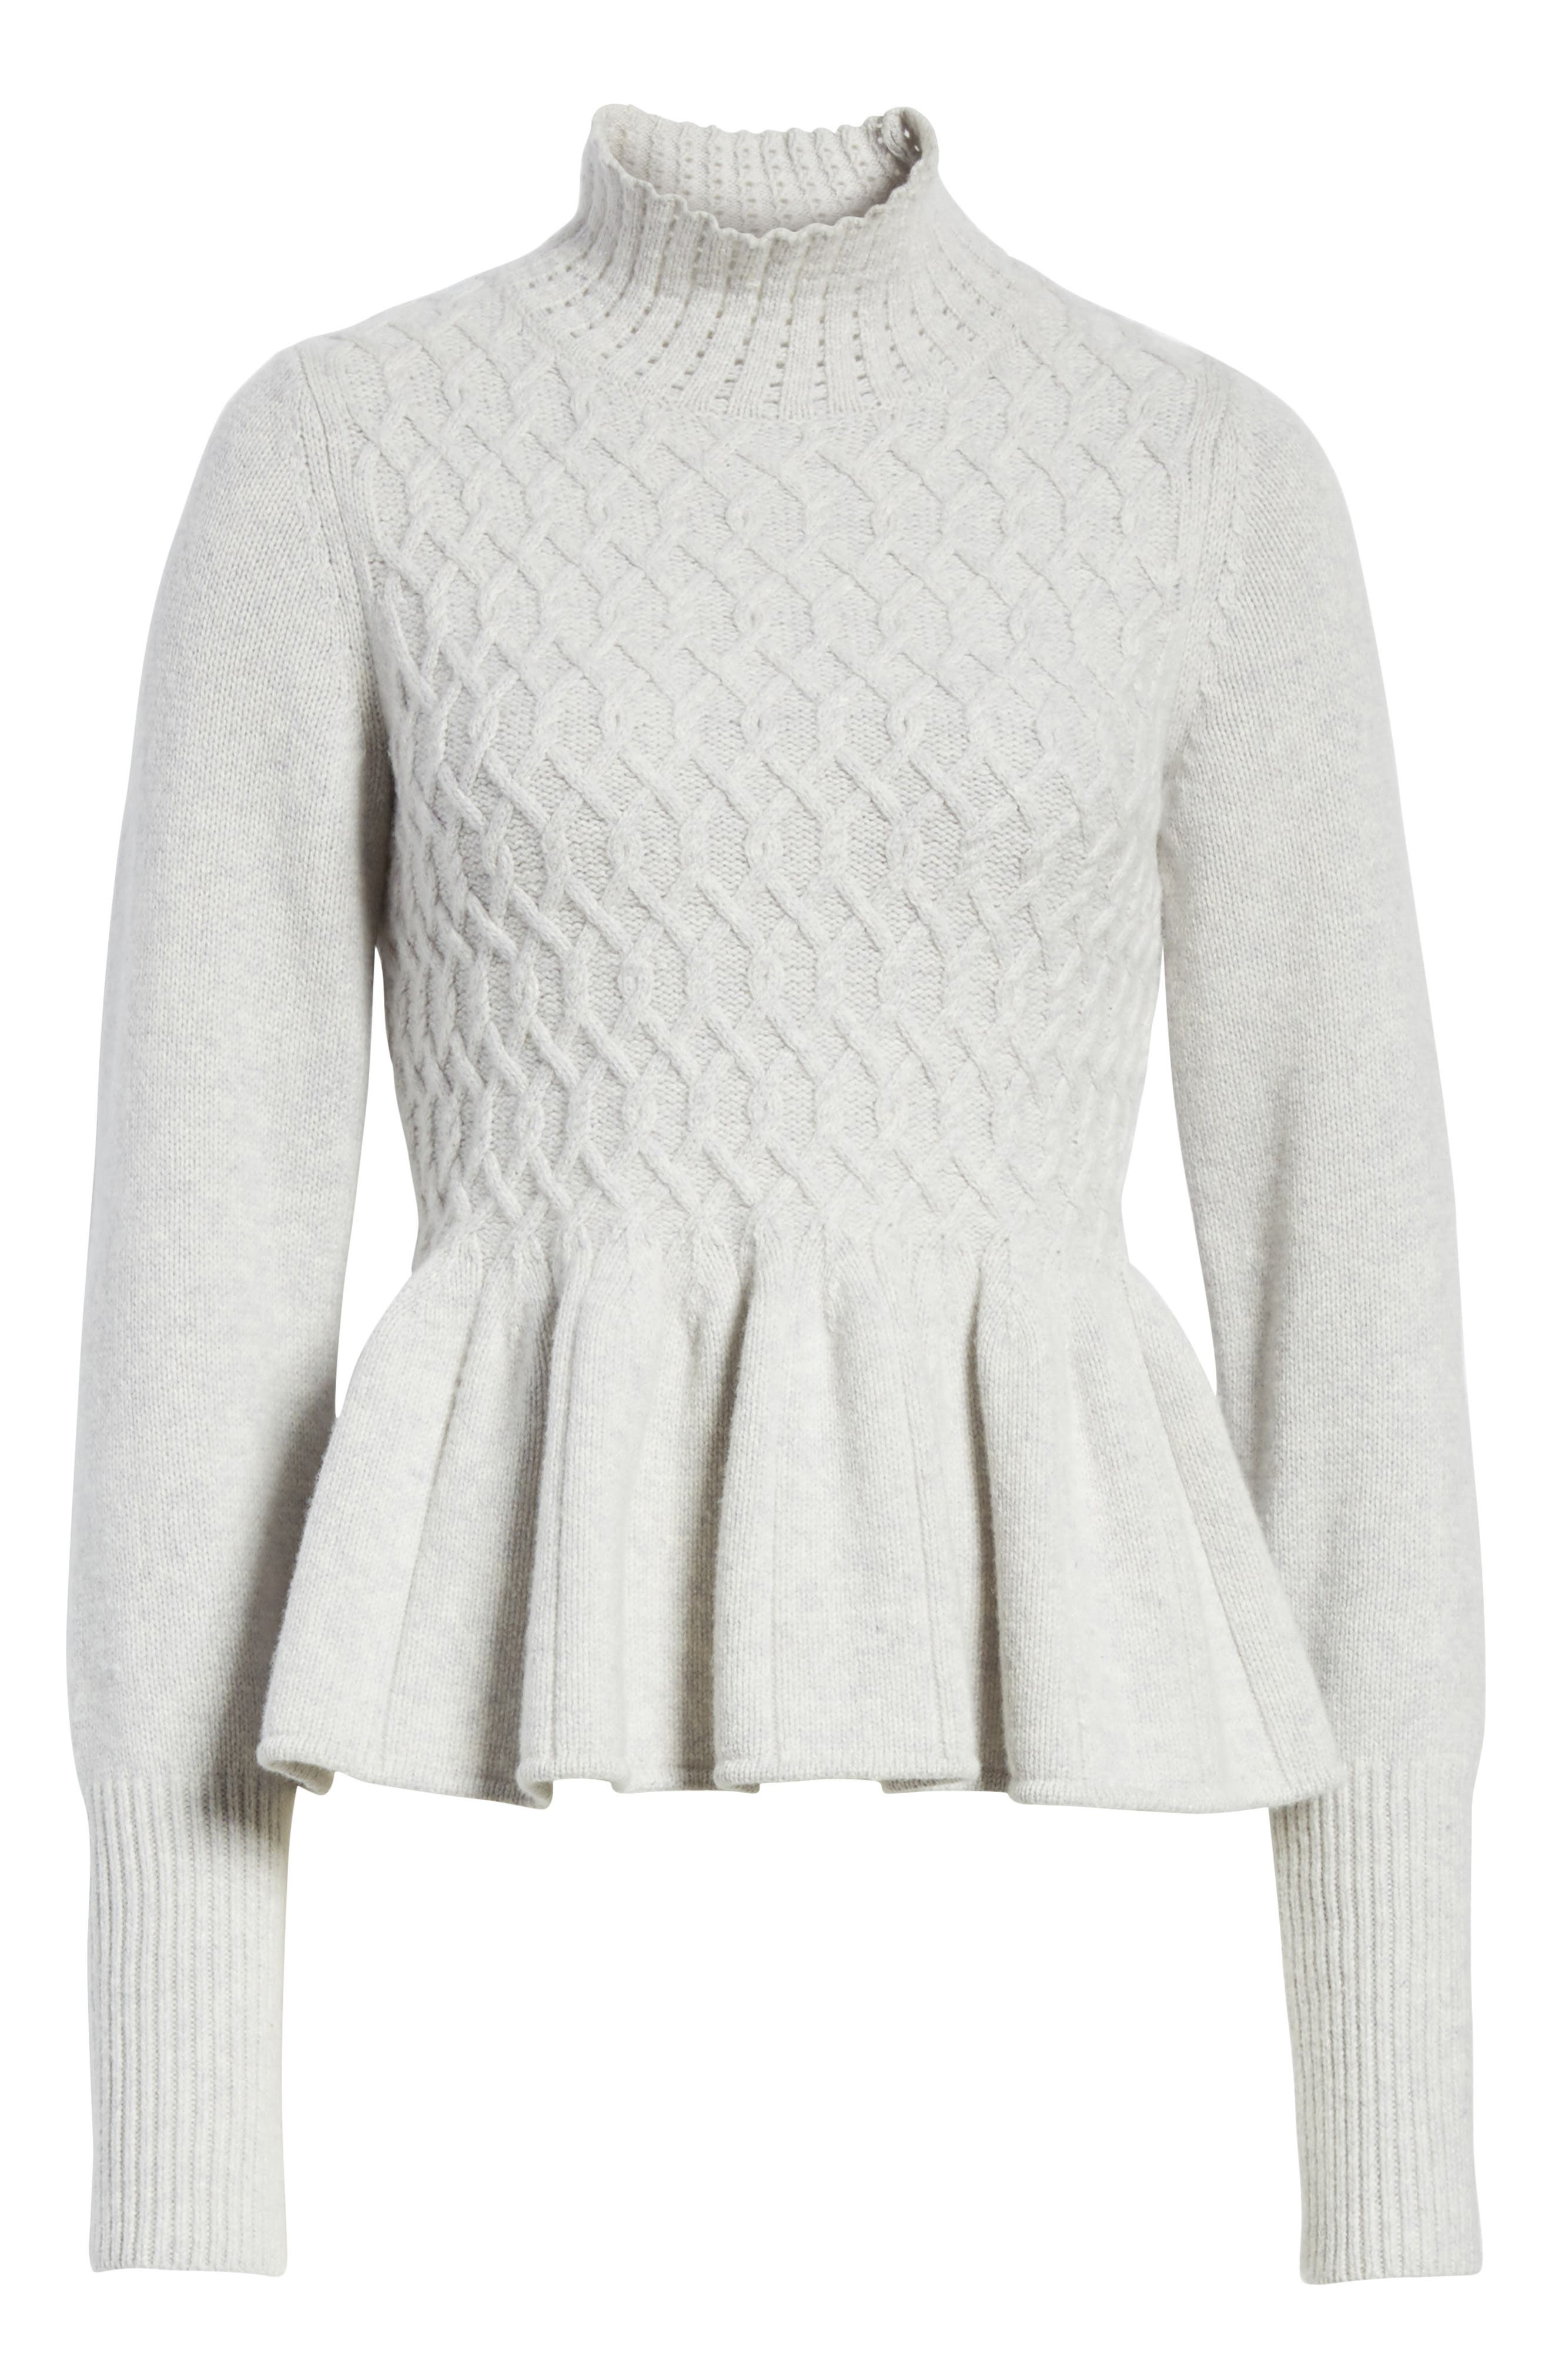 Braided Cable Mock Neck Pullover,                             Alternate thumbnail 6, color,                             058